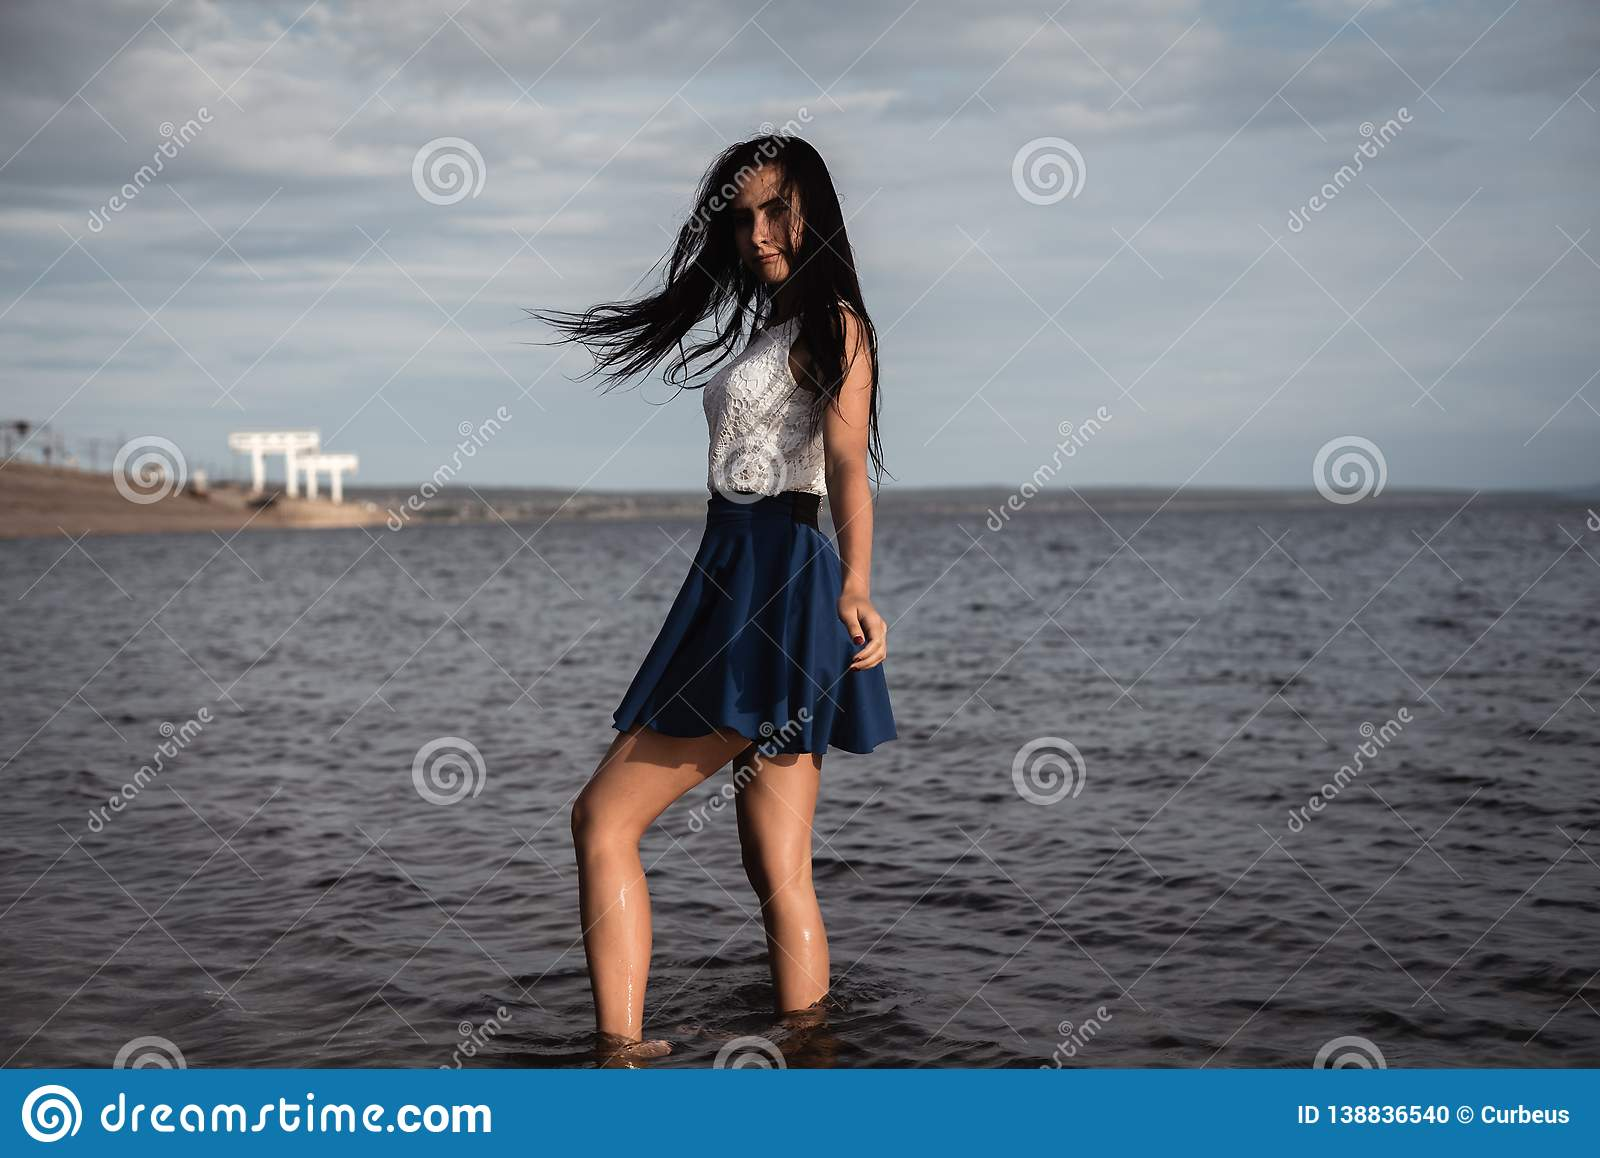 Brunette girl in a skirt standing in the water with her hair down. against the background of concrete and hydroelectric power.